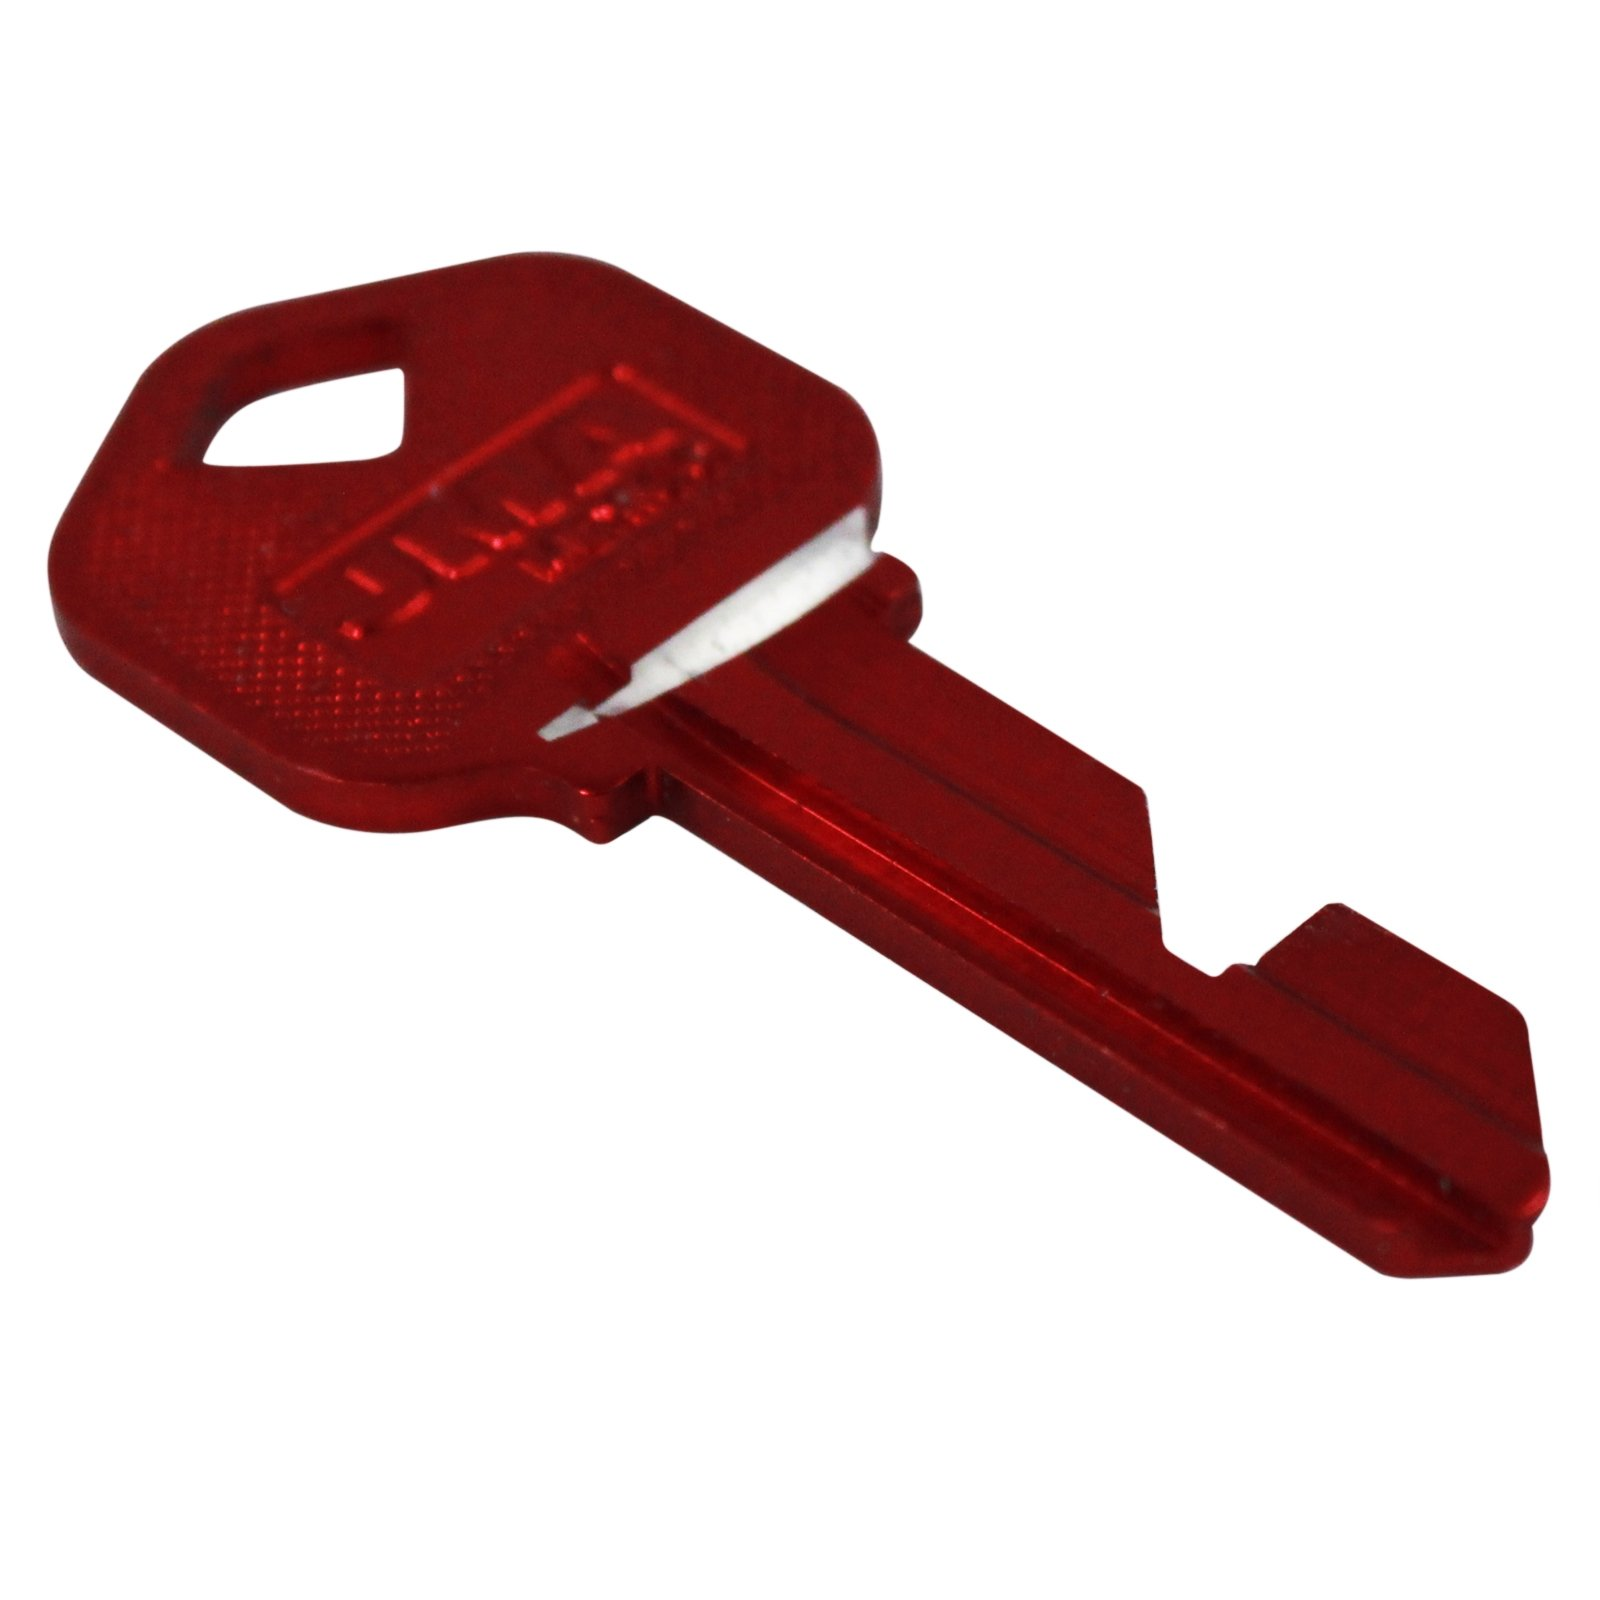 ASR Tactical Killer Key Lock Disabler - Kwikset